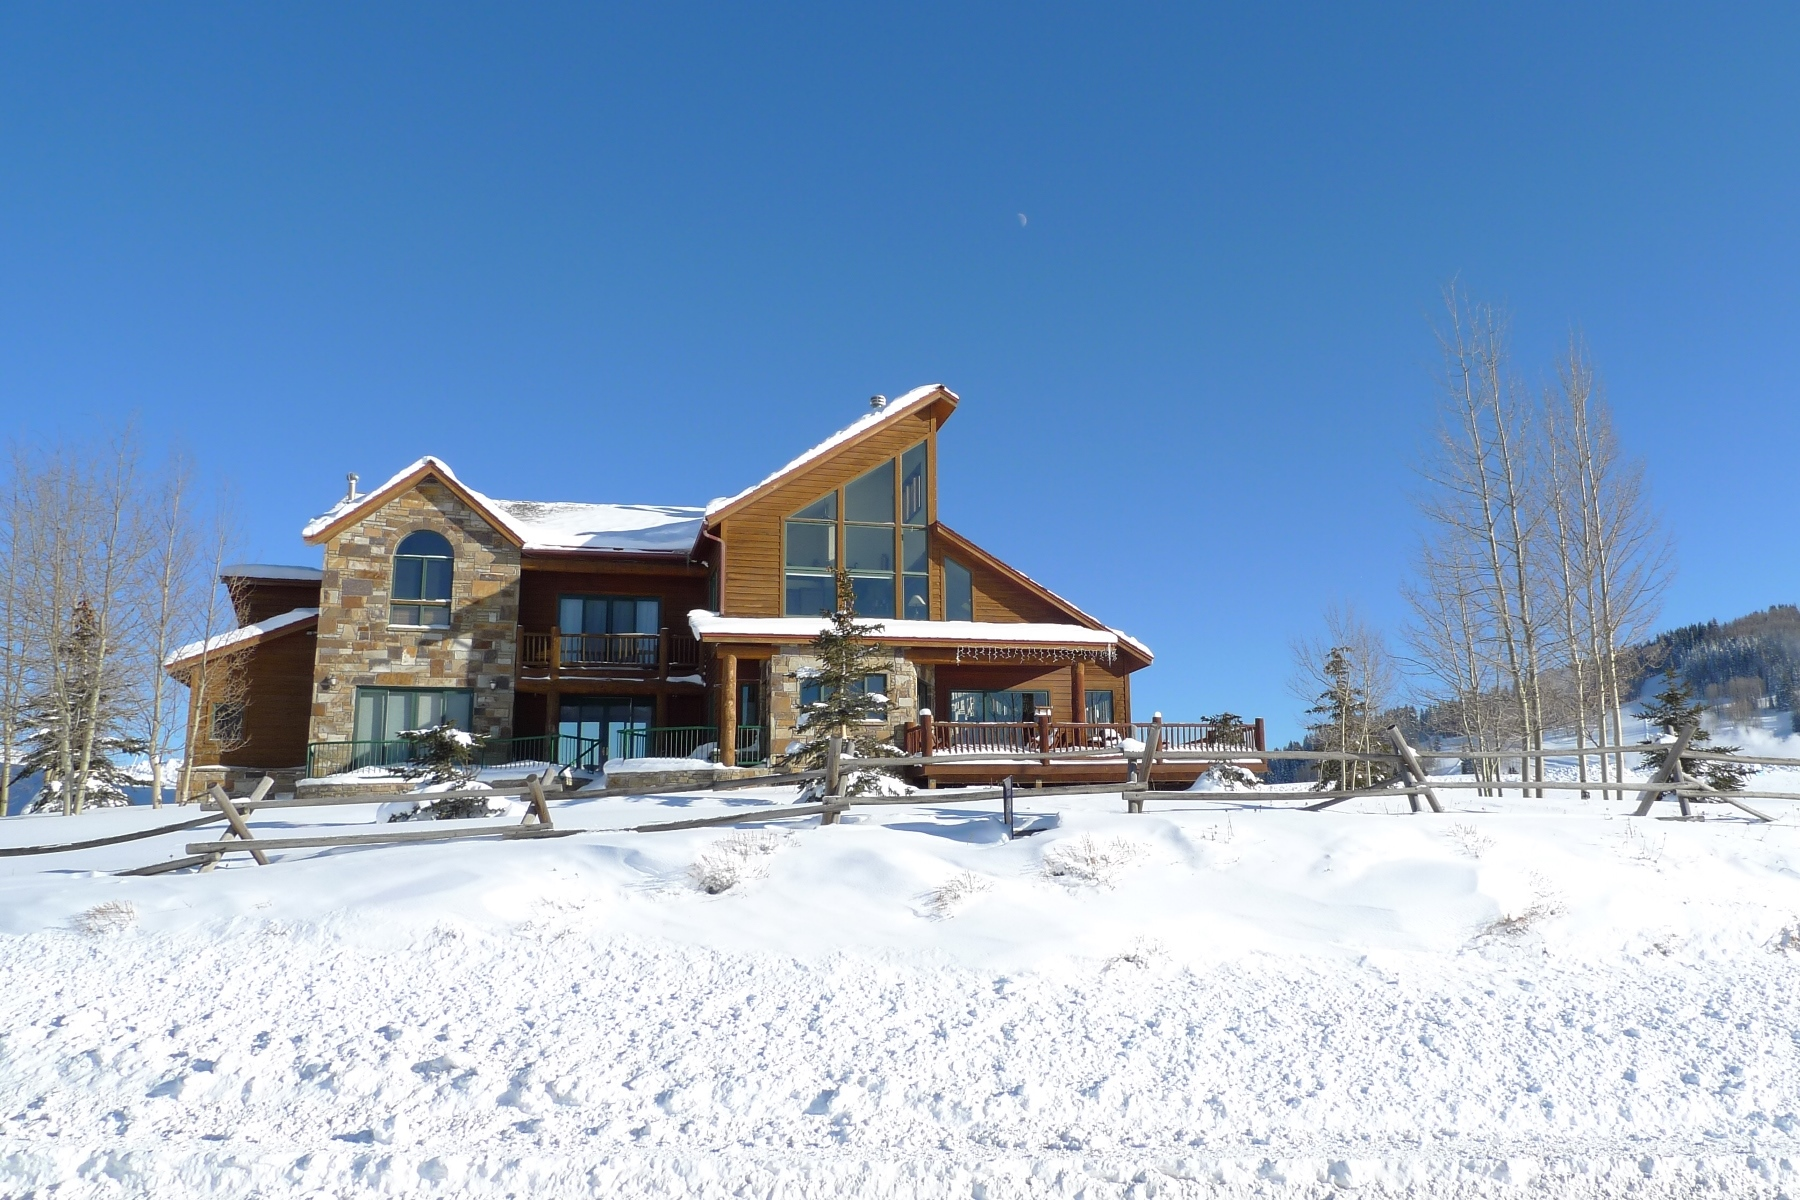 Casa Unifamiliar por un Venta en Breathtaking Panoramic Views 3 Lapis Lane Mount Crested Butte, Colorado, 81225 Estados Unidos